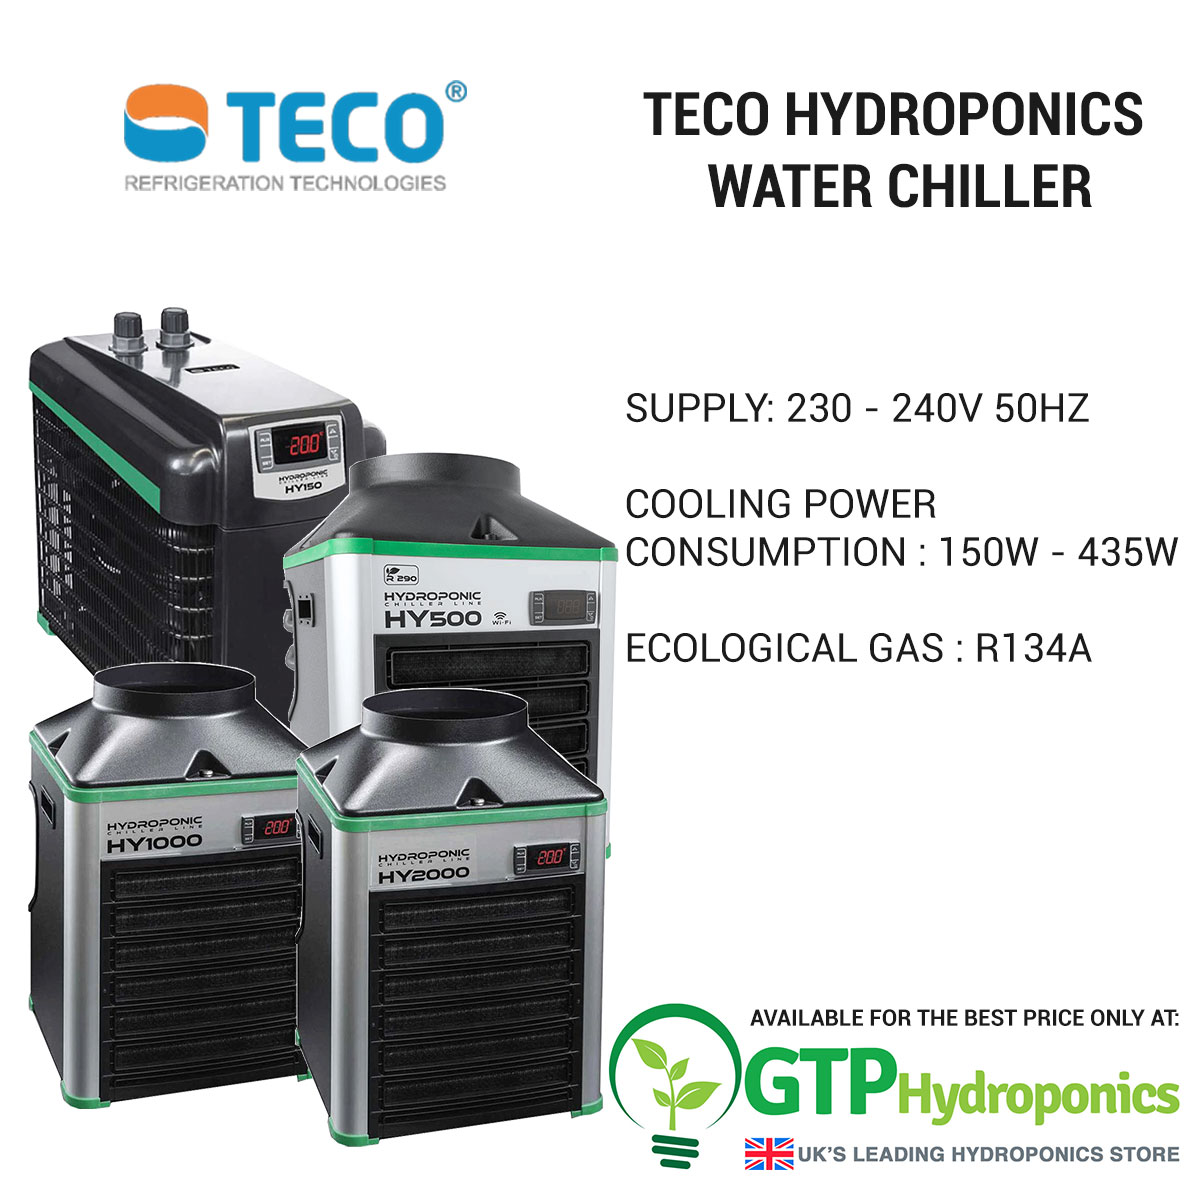 Teco Hydroponics Water Chiller overview